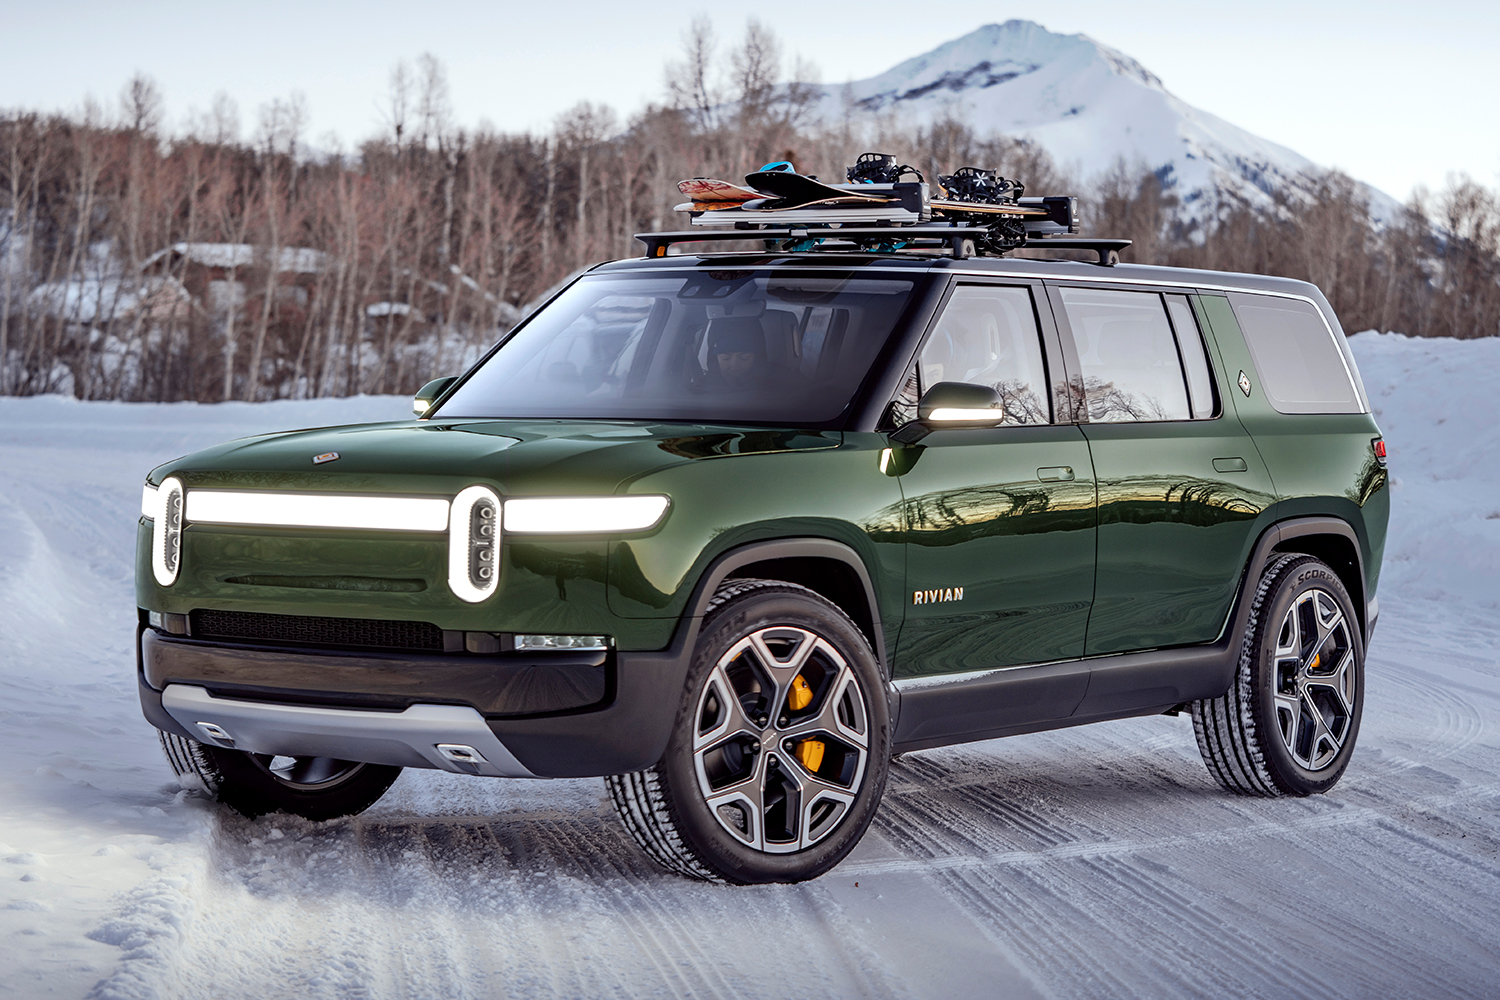 Amazon invested in electric vehicle startup Rivian. Now they're working on an undisclosed project.